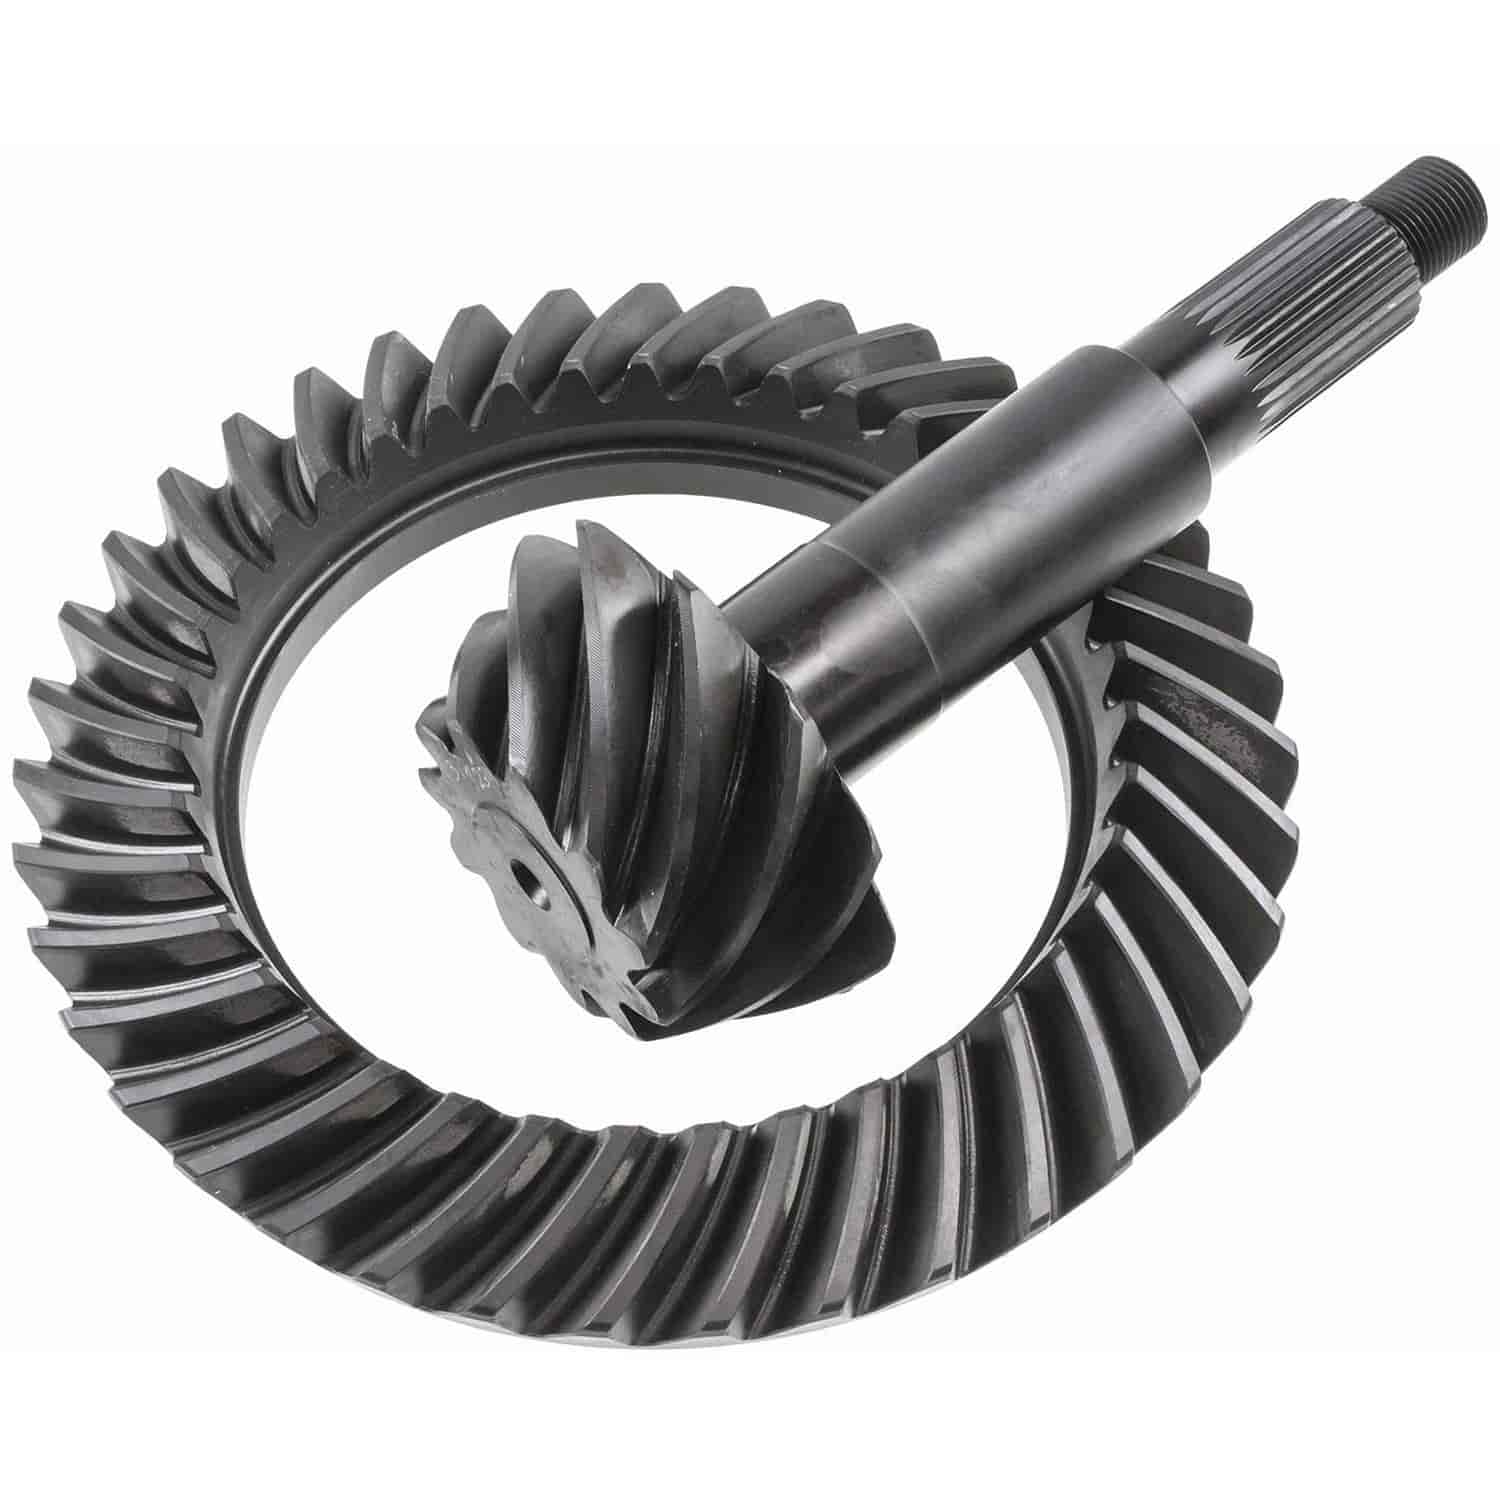 Richmond Gear 49-0129-1 - Richmond Gear Dana Ring & Pinion Sets